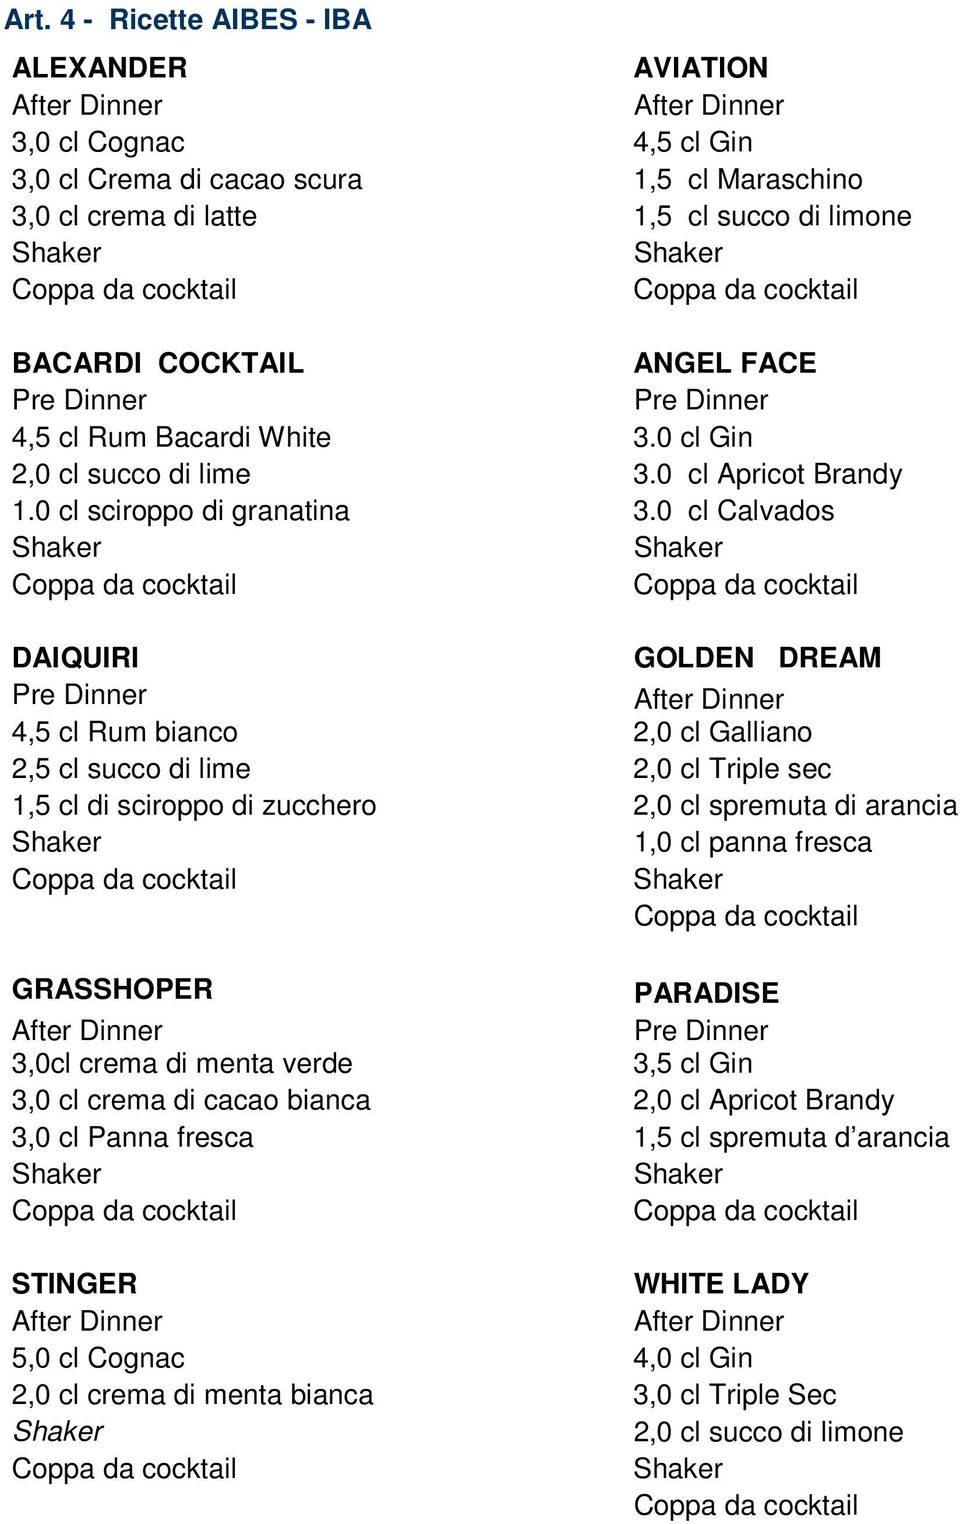 0 cl Calvados DAIQUIRI GOLDEN DREAM Pre Dinner 4,5 cl Rum bianco 2,0 cl Galliano 2,5 cl succo di lime 2,0 cl Triple sec 1,5 cl di sciroppo di zucchero 2,0 cl spremuta di arancia 1,0 cl panna fresca